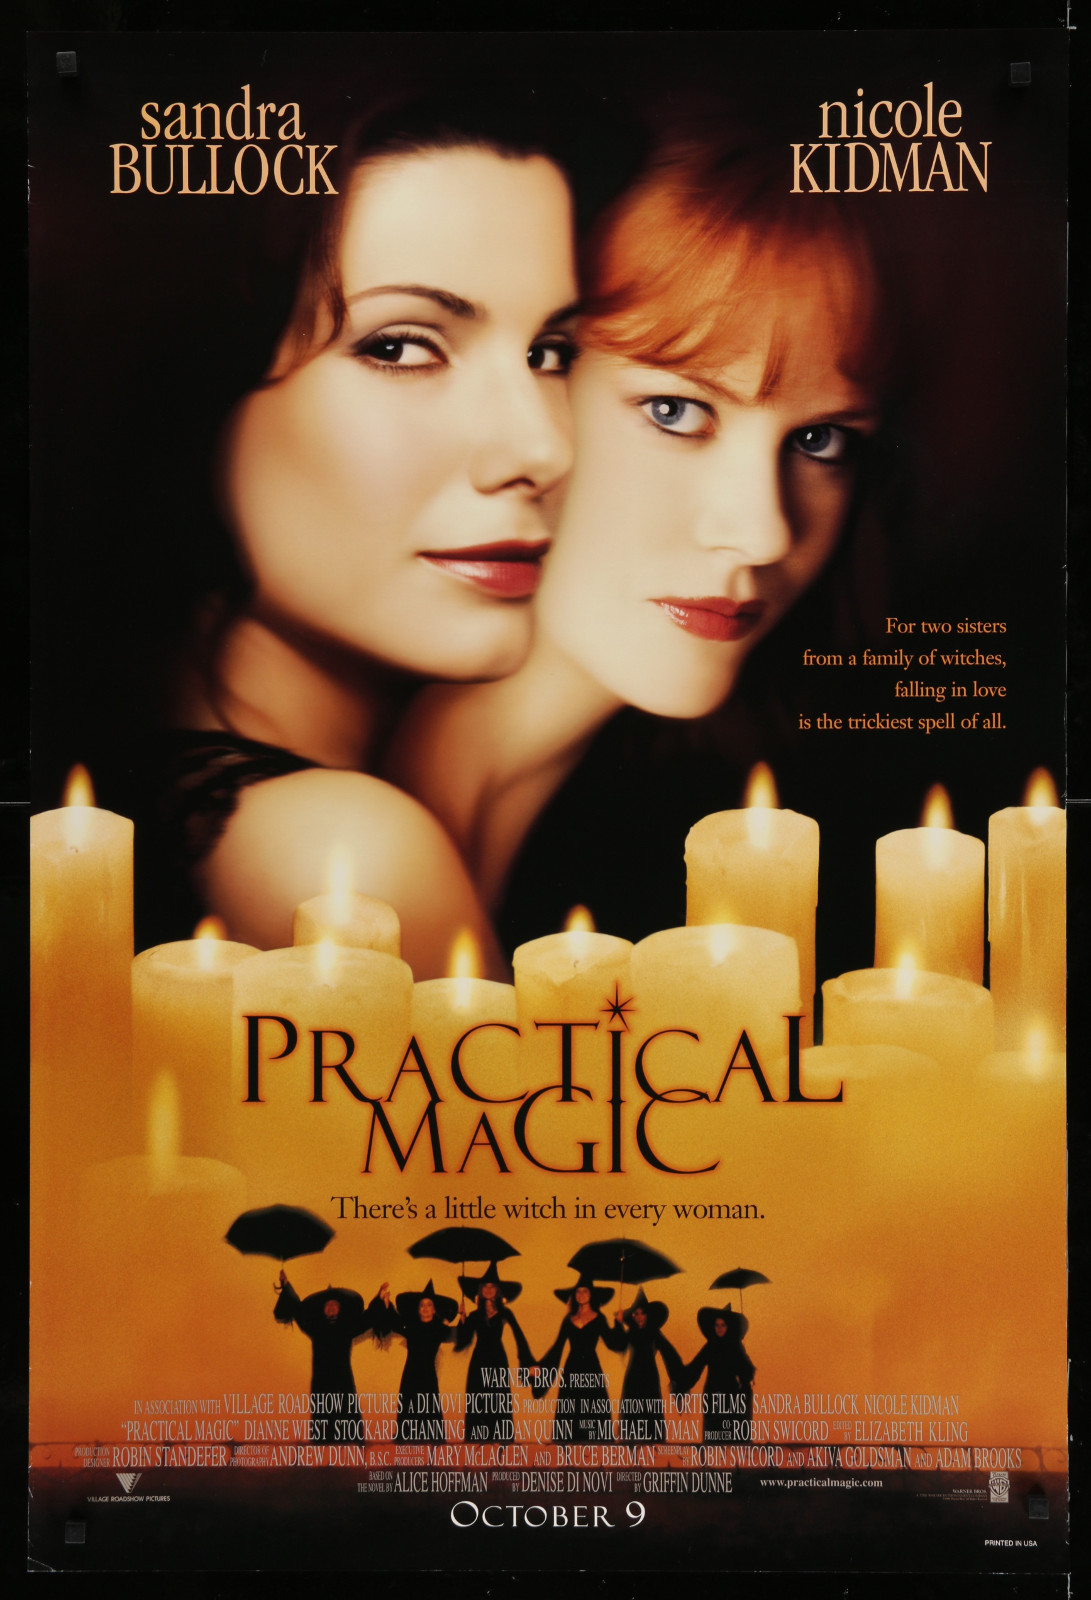 Practical Magic 2A393 A Part Of A Lot 23 Unfolded Mostly Double-Sided 27X40 One-Sheets '90S Great Movie Images!